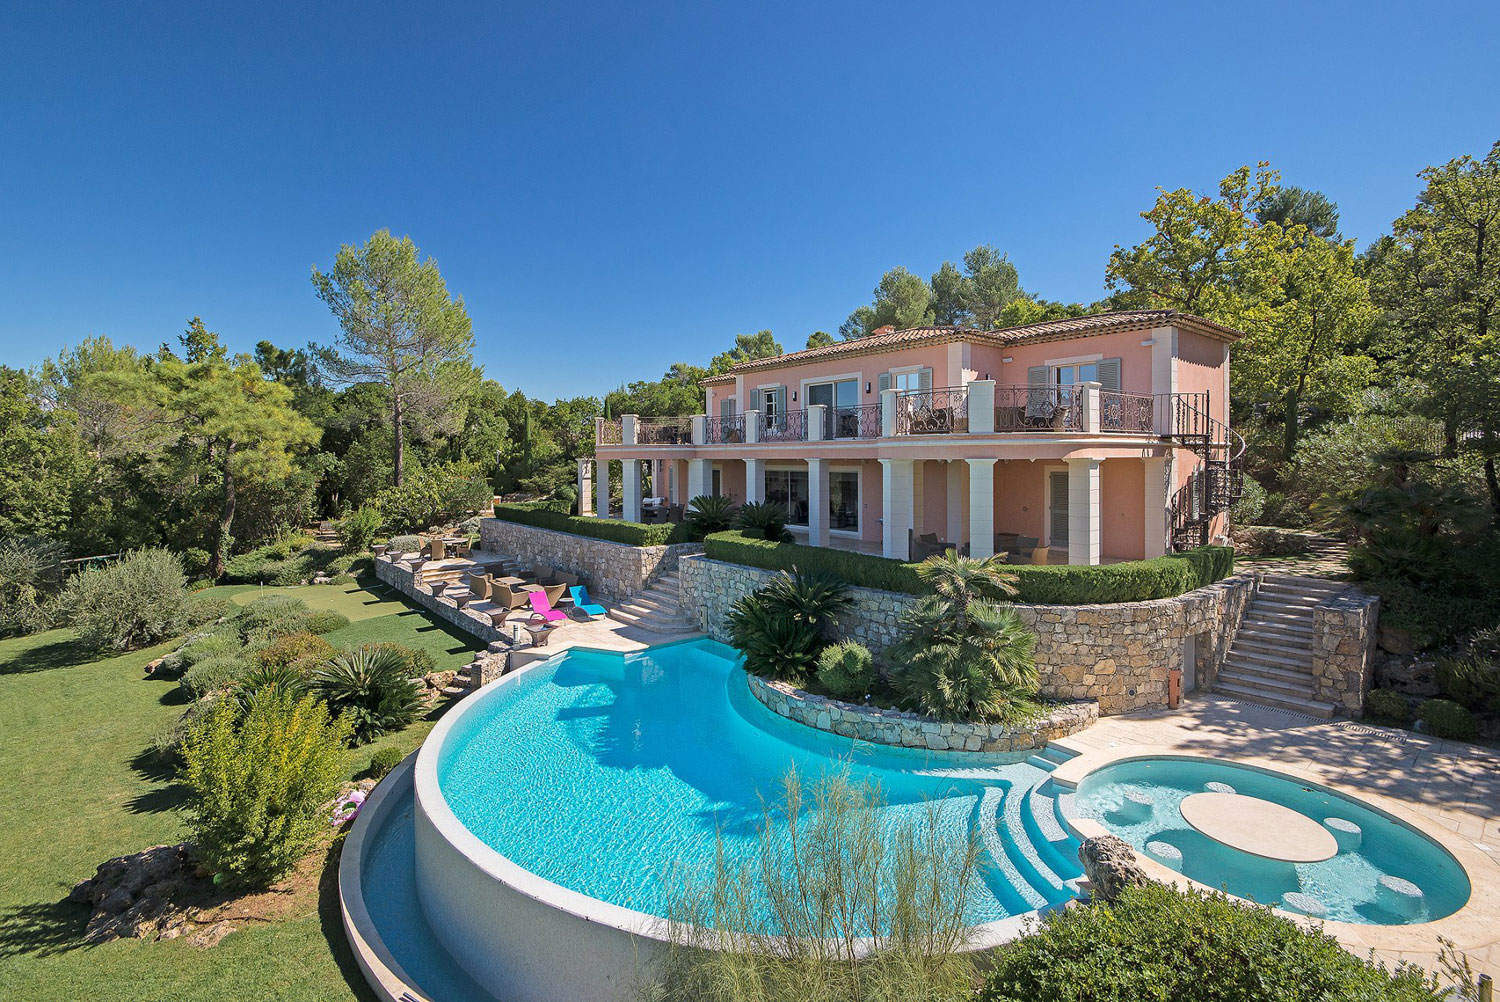 This elegant French villa is situated in the private resort community of Terre Blanche, a few minutes' drive from Cannes and Nice, in the heart of Provence. The resort features two championship golf courses and five-star hotel amenities.